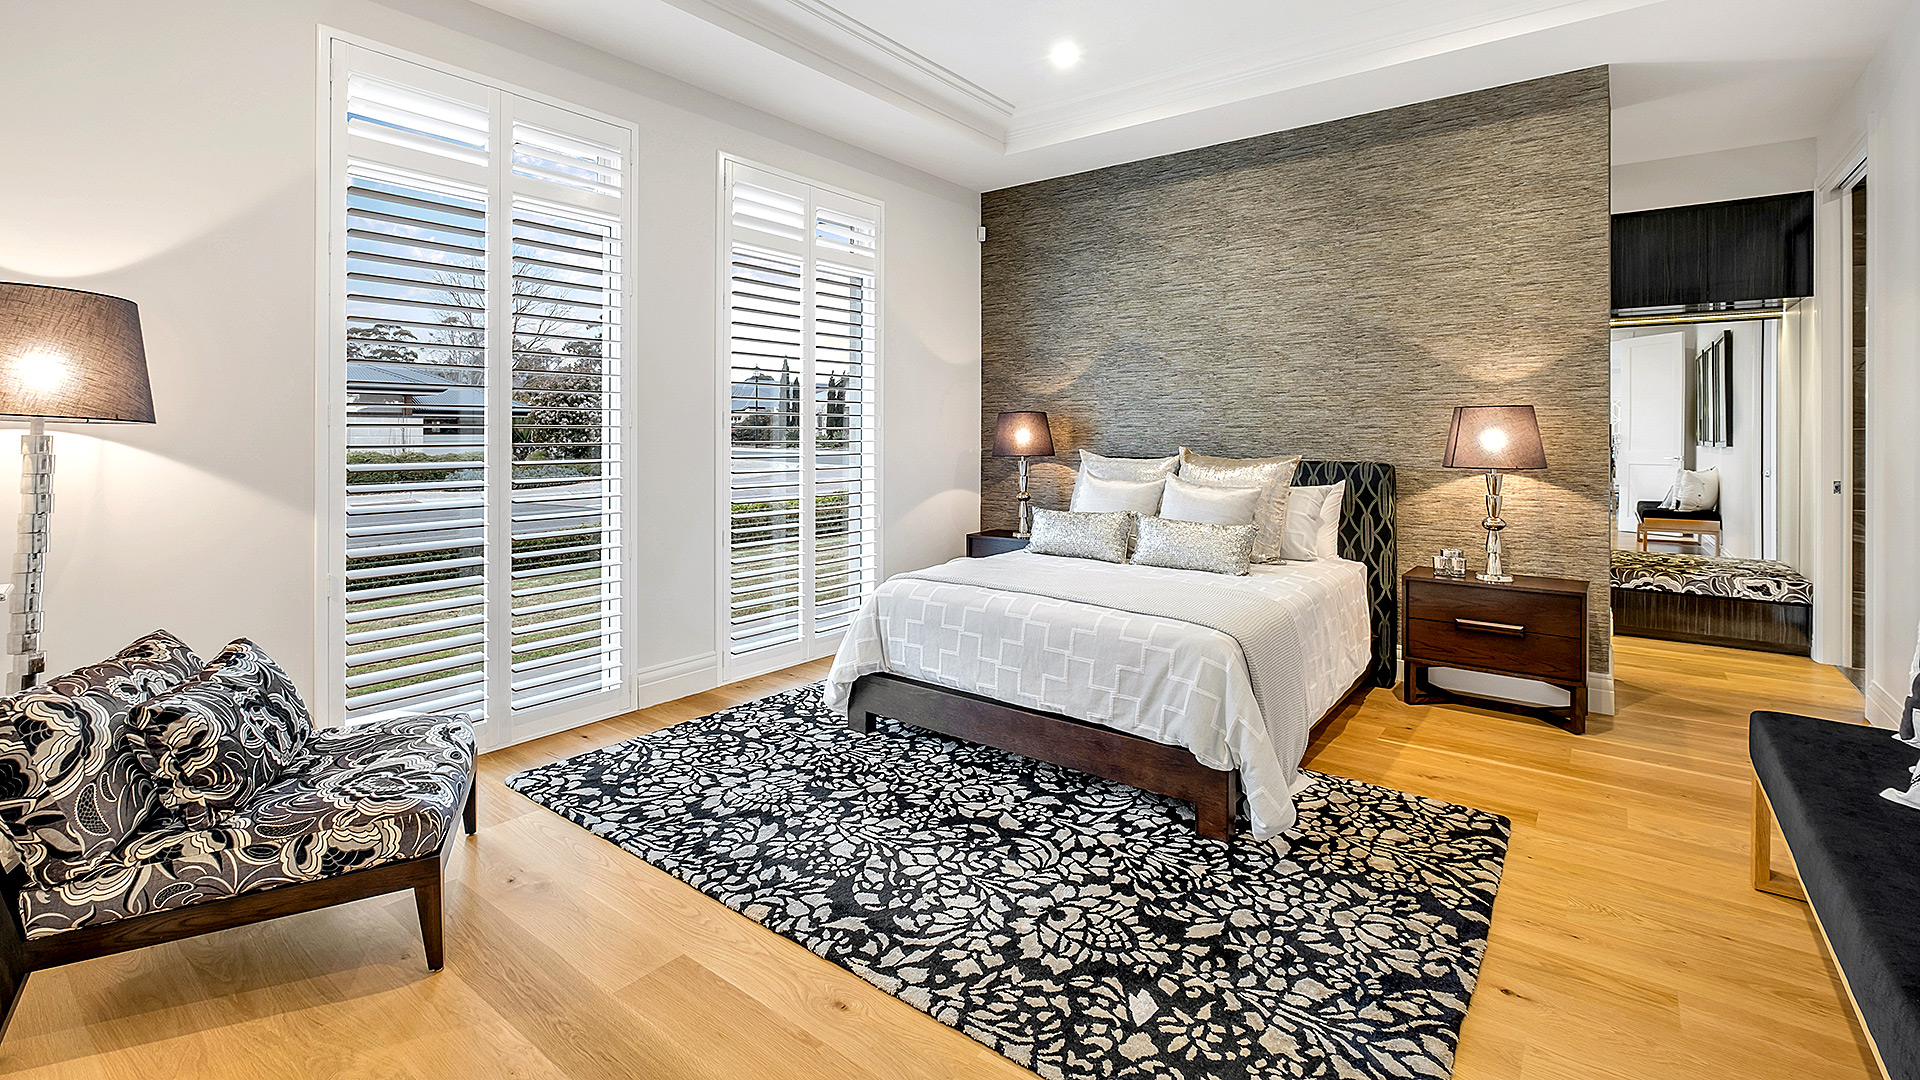 stunning image of the Master suite of the grand prize home